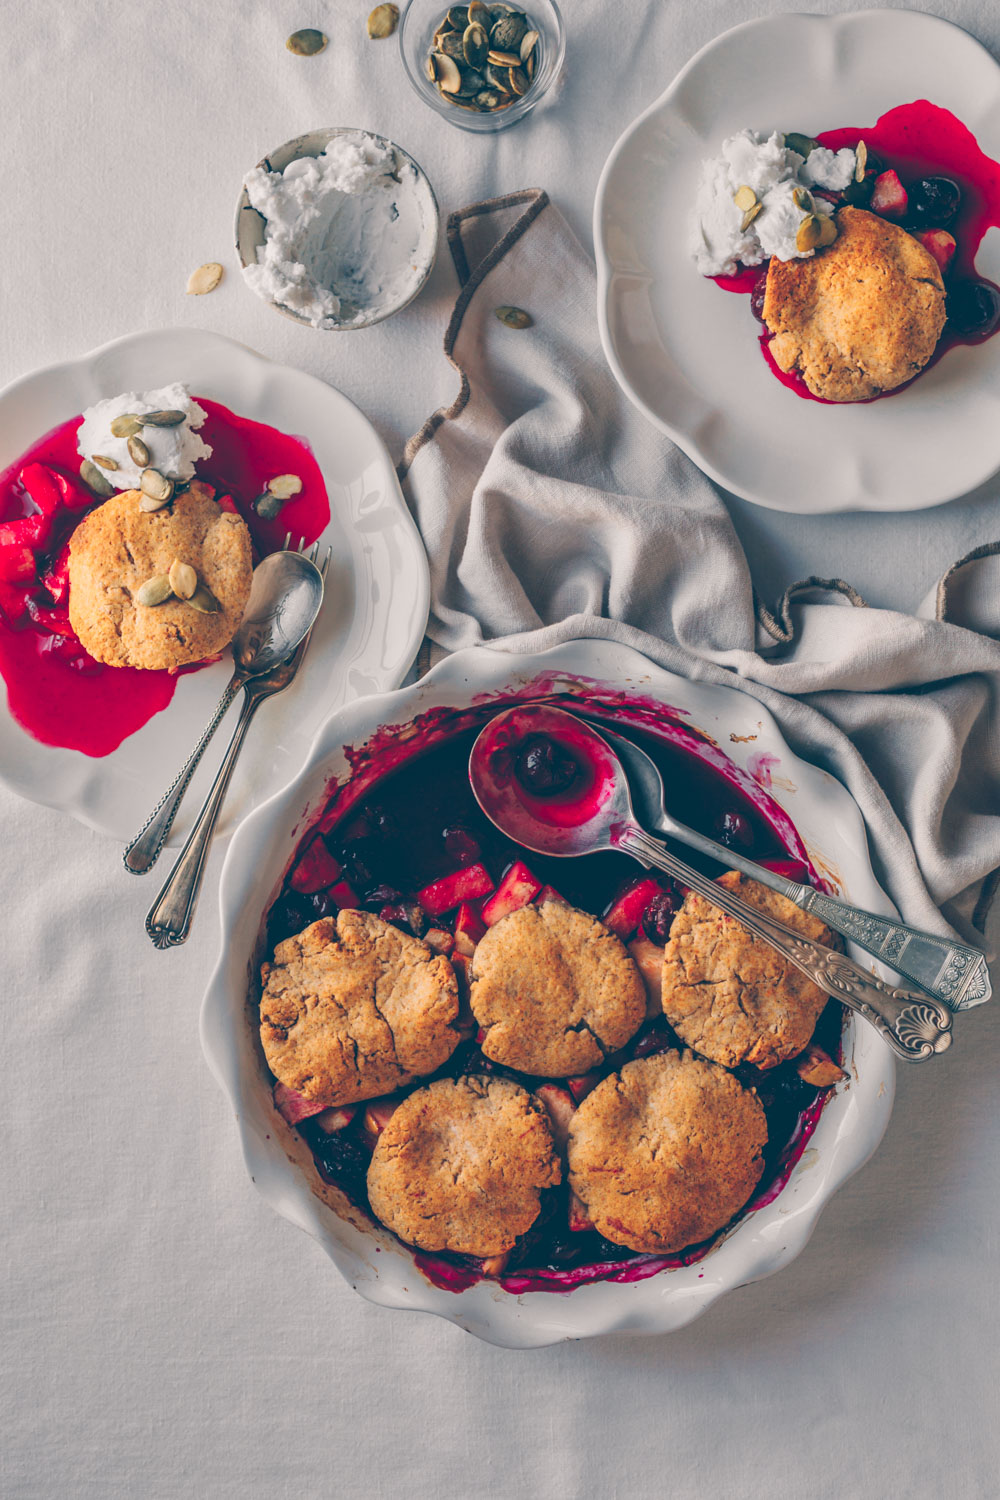 Cherry Pear Apple Cobbler (vegan & gluten-free) by Kati of black.white.vivid.